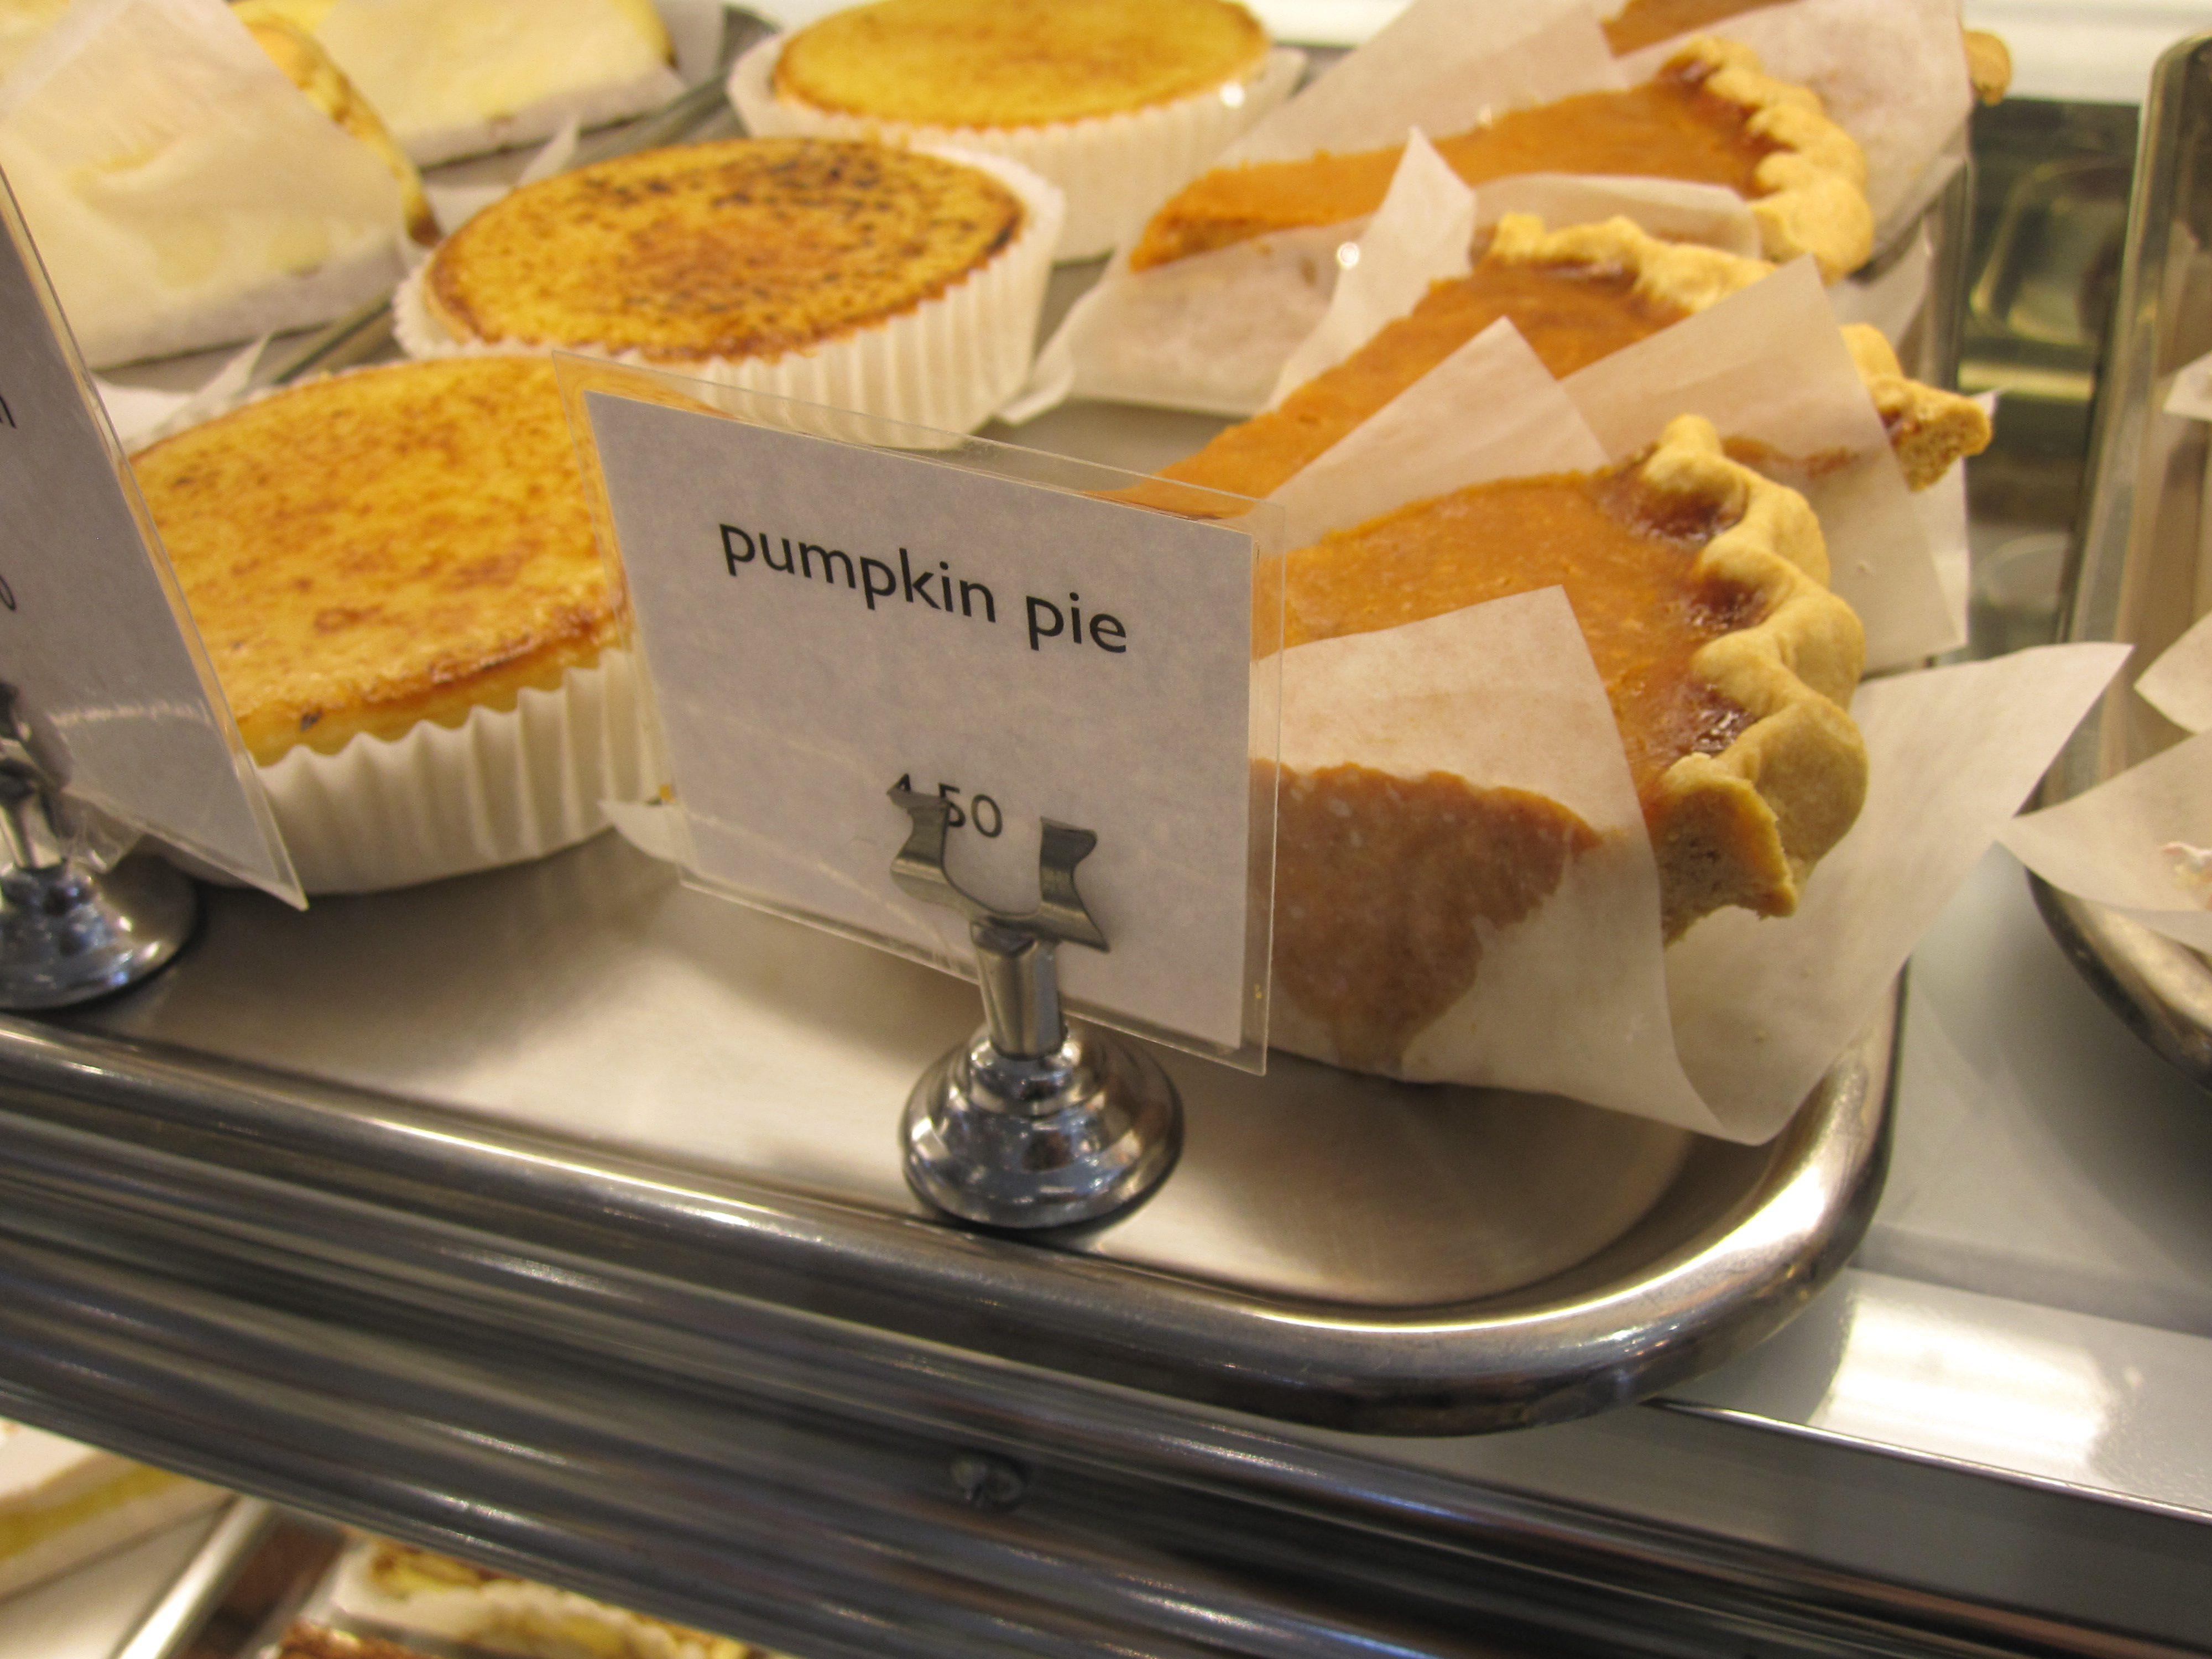 Pumpkin pie..my fave